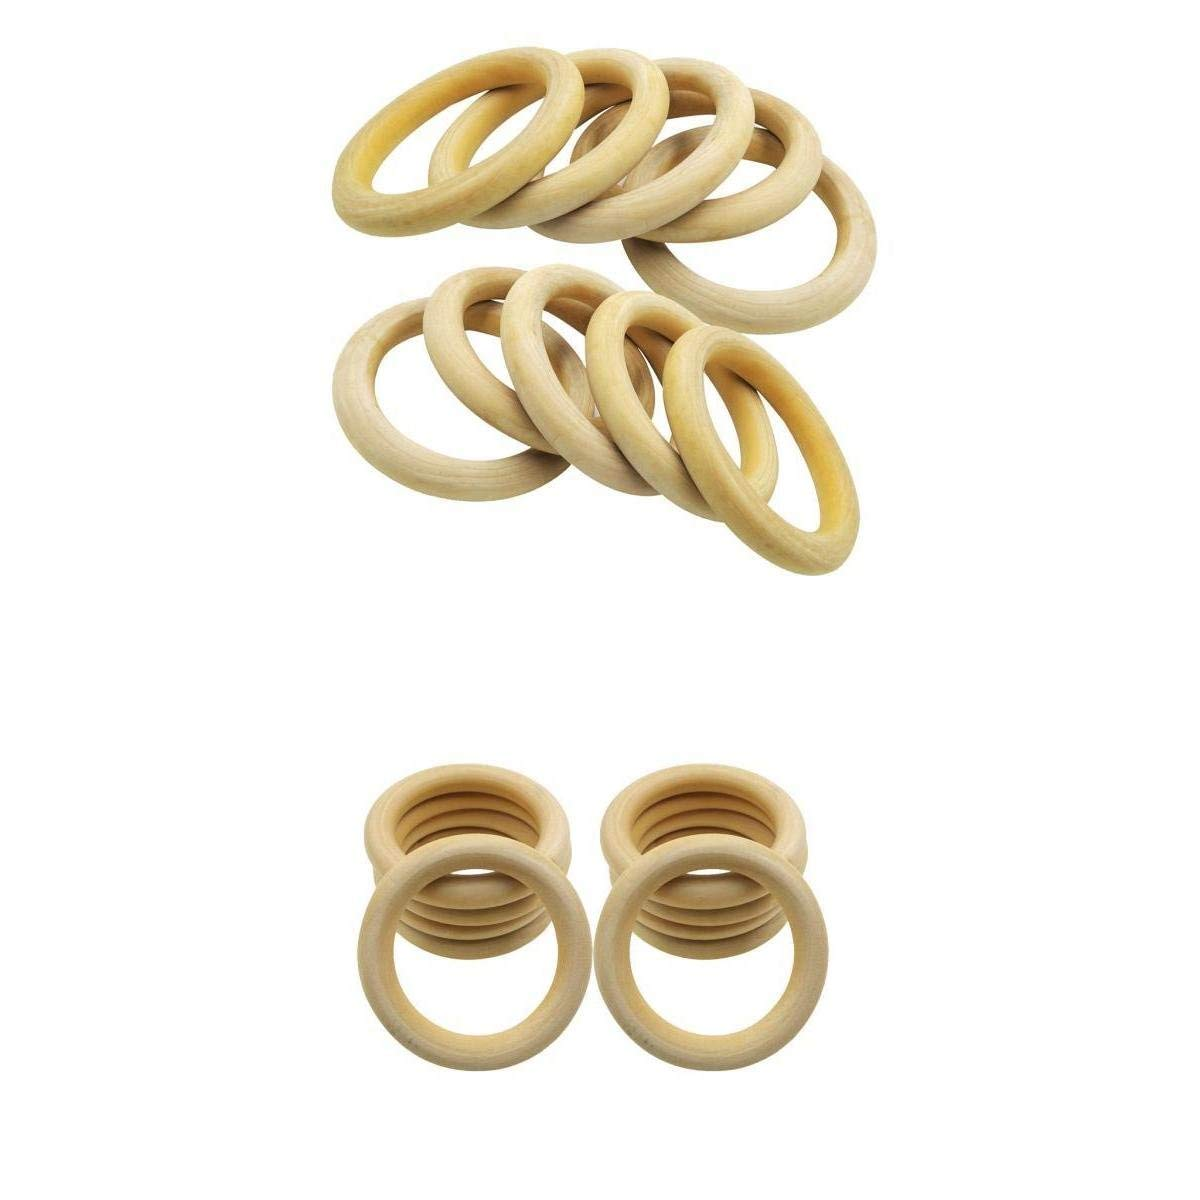 MagiDeal 15 Pieces Mix 70 & 100 Mm Unfinished Natural Wood Rings DIY Wooden Beads Connectors Circles Rings Beads Craft Rings